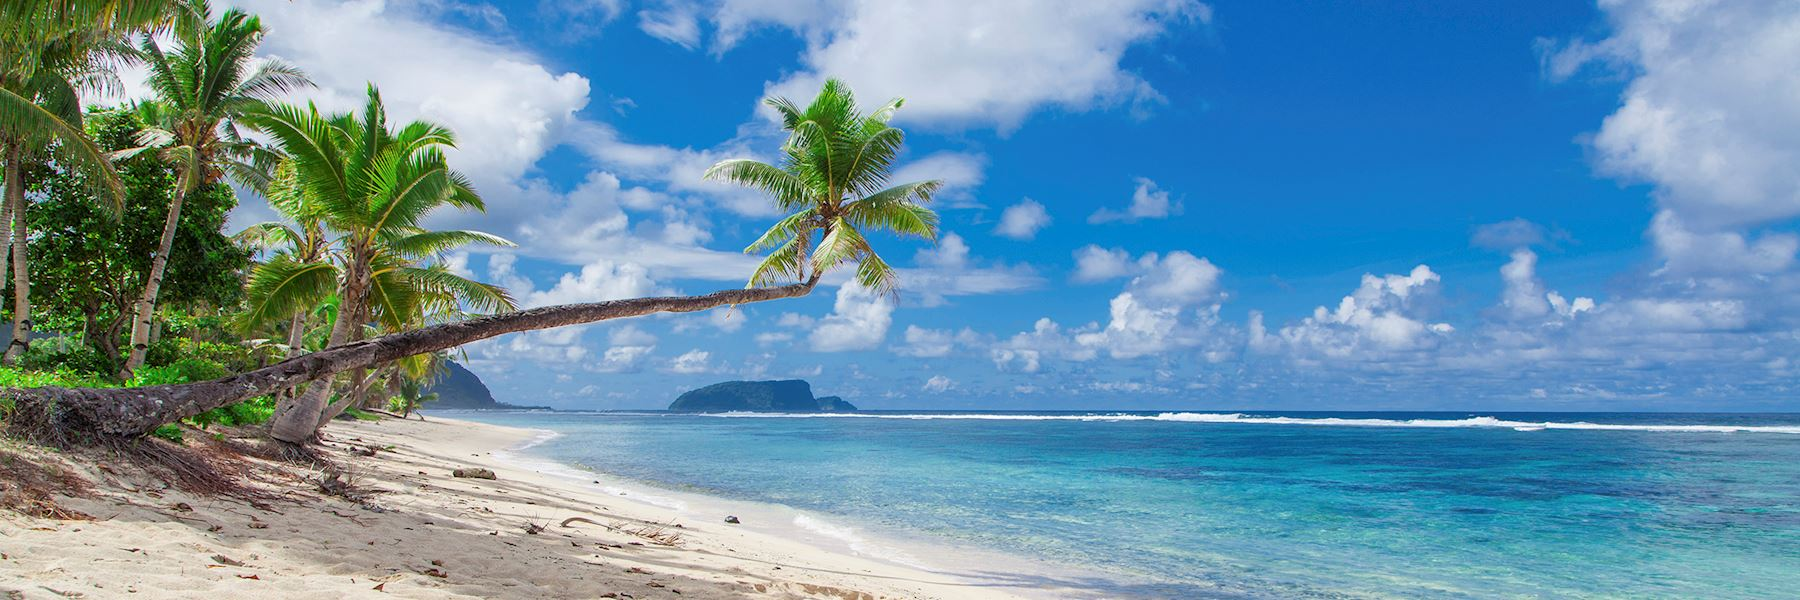 Experts in tailor-made holidays to the South Pacific